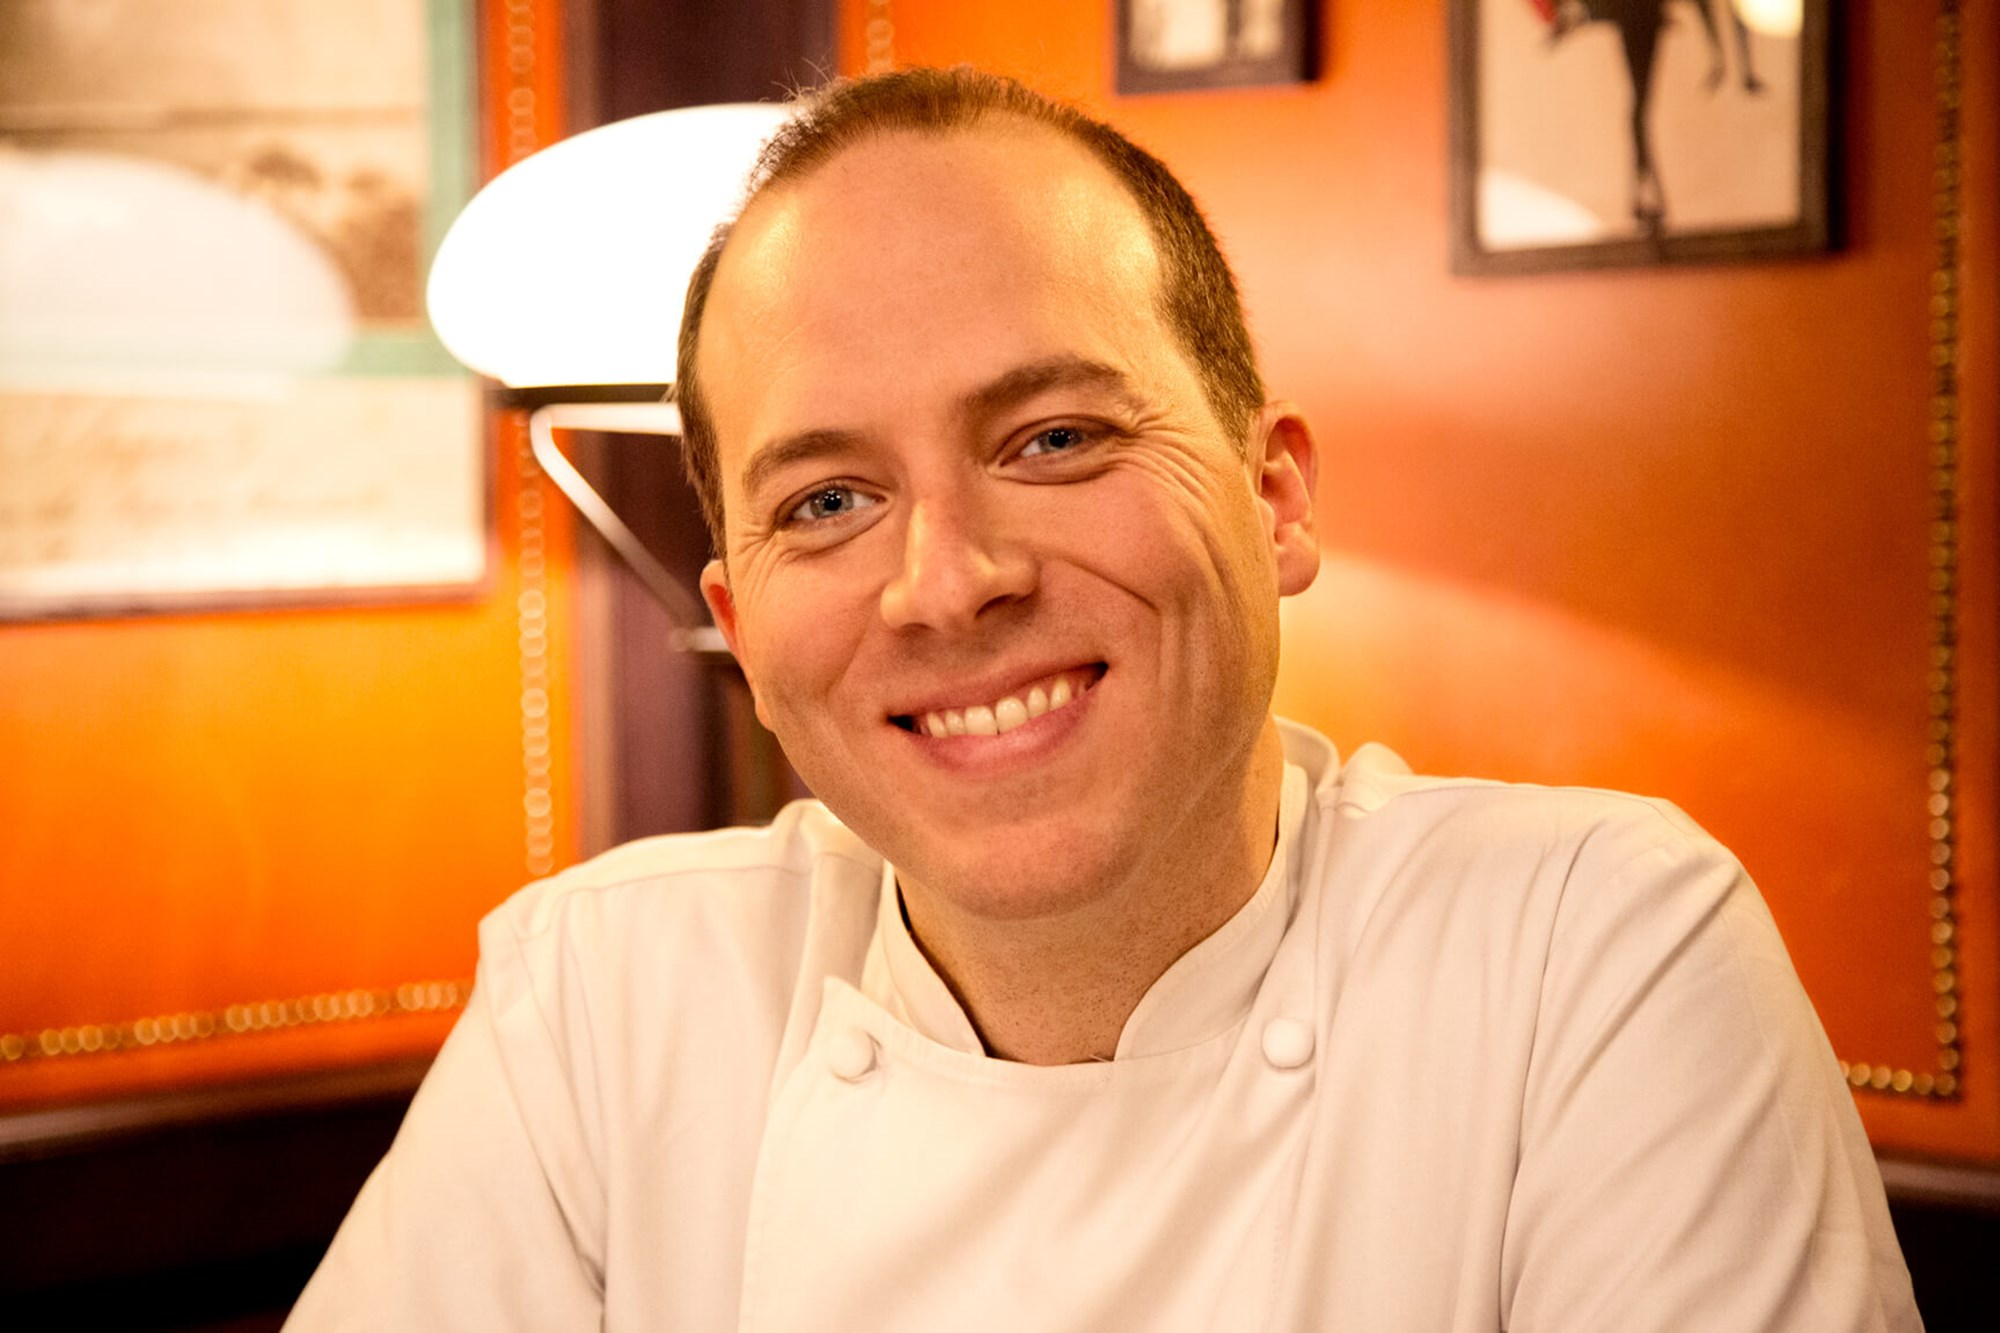 Diego Cardoso, Executive Chef at Harry's Dolce Vita, Italian Restaurant in London